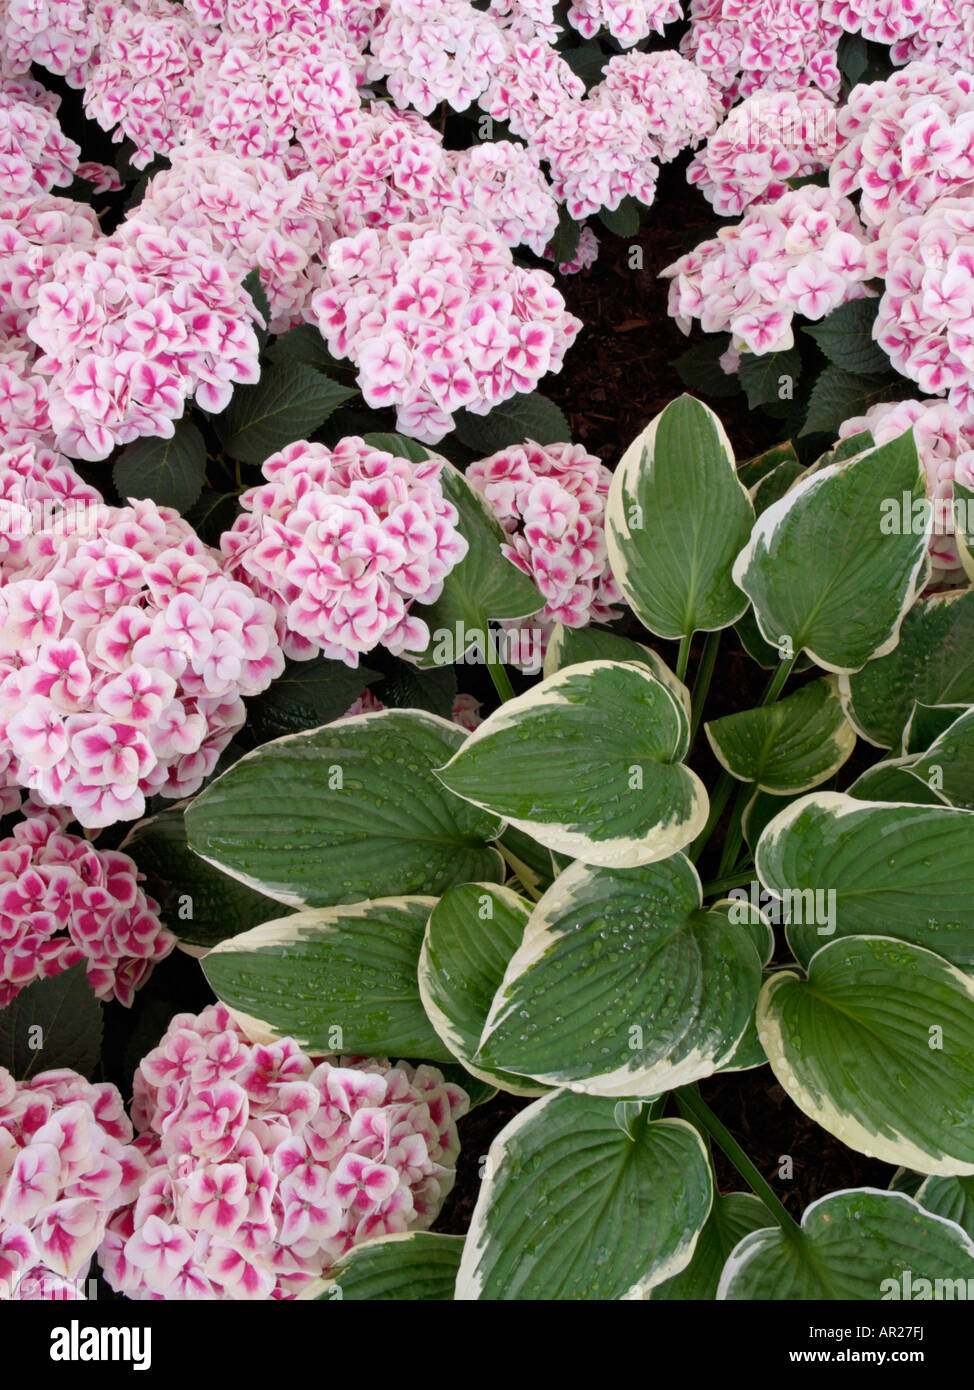 Plantain lily (Hosta) and big-leaved hydrangea (Hydrangea macrophylla 'Red Ace') Stock Photo